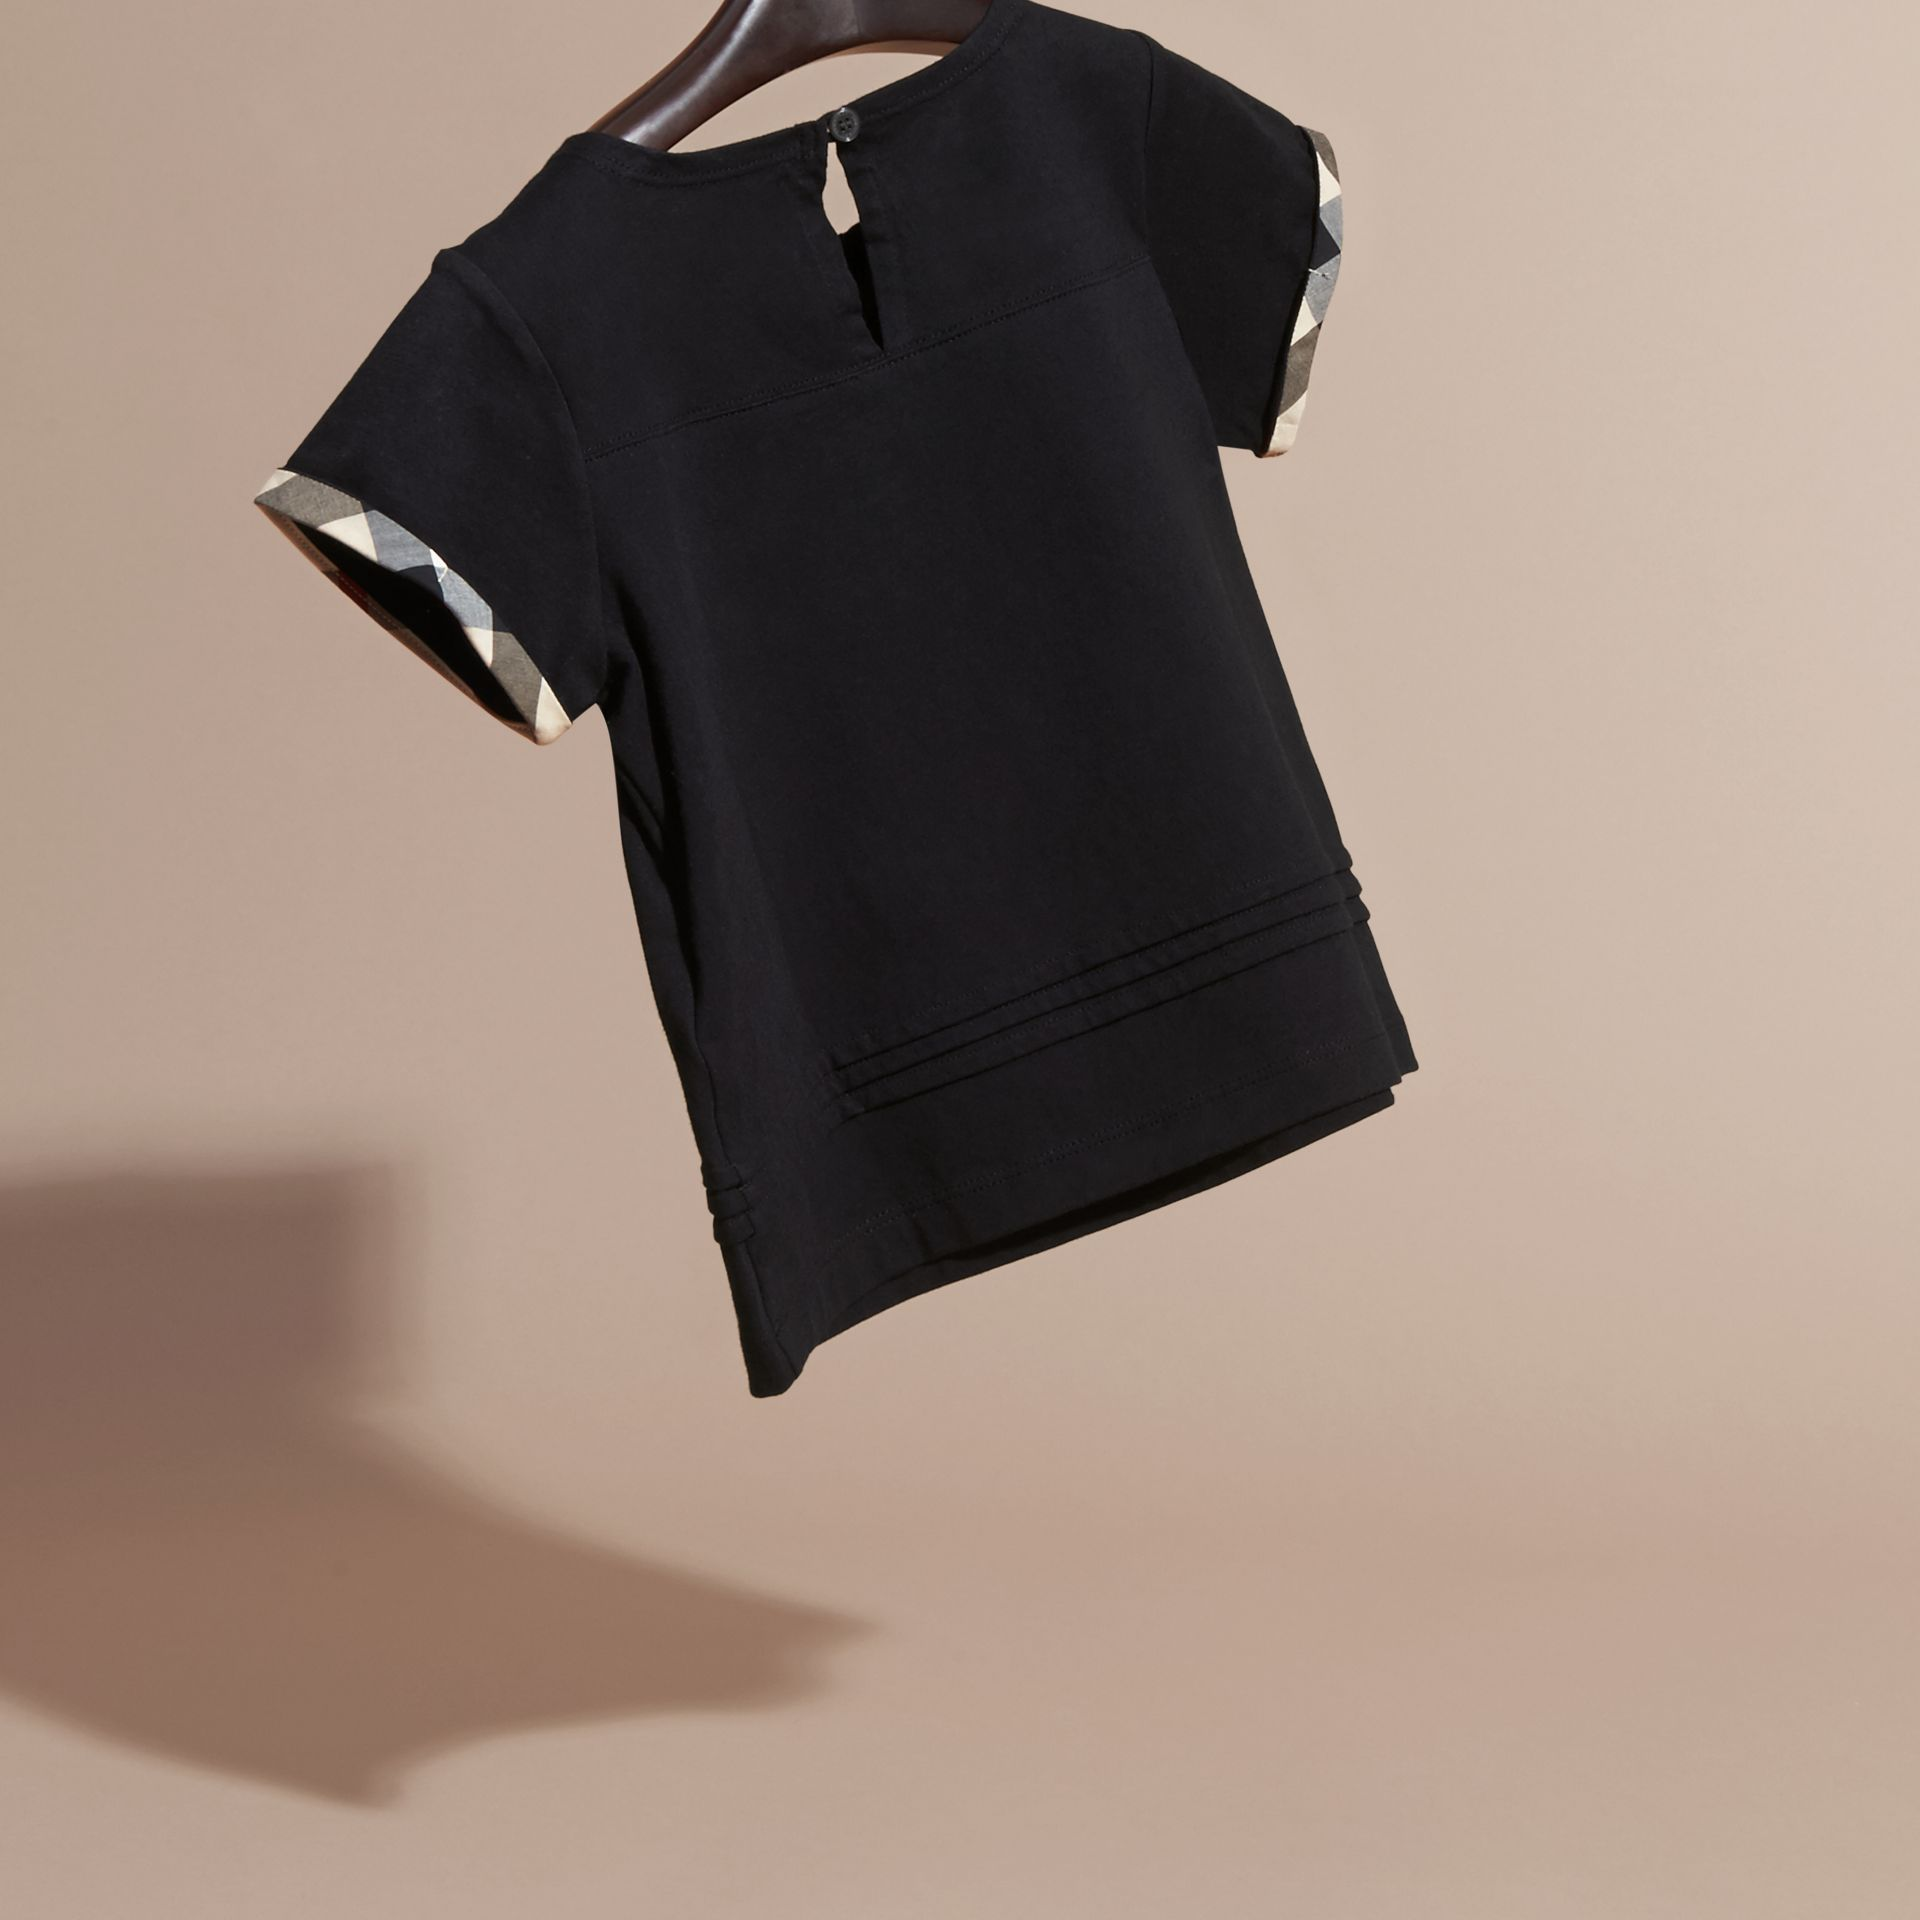 Pleat Detail Check Cotton T-Shirt - gallery image 4